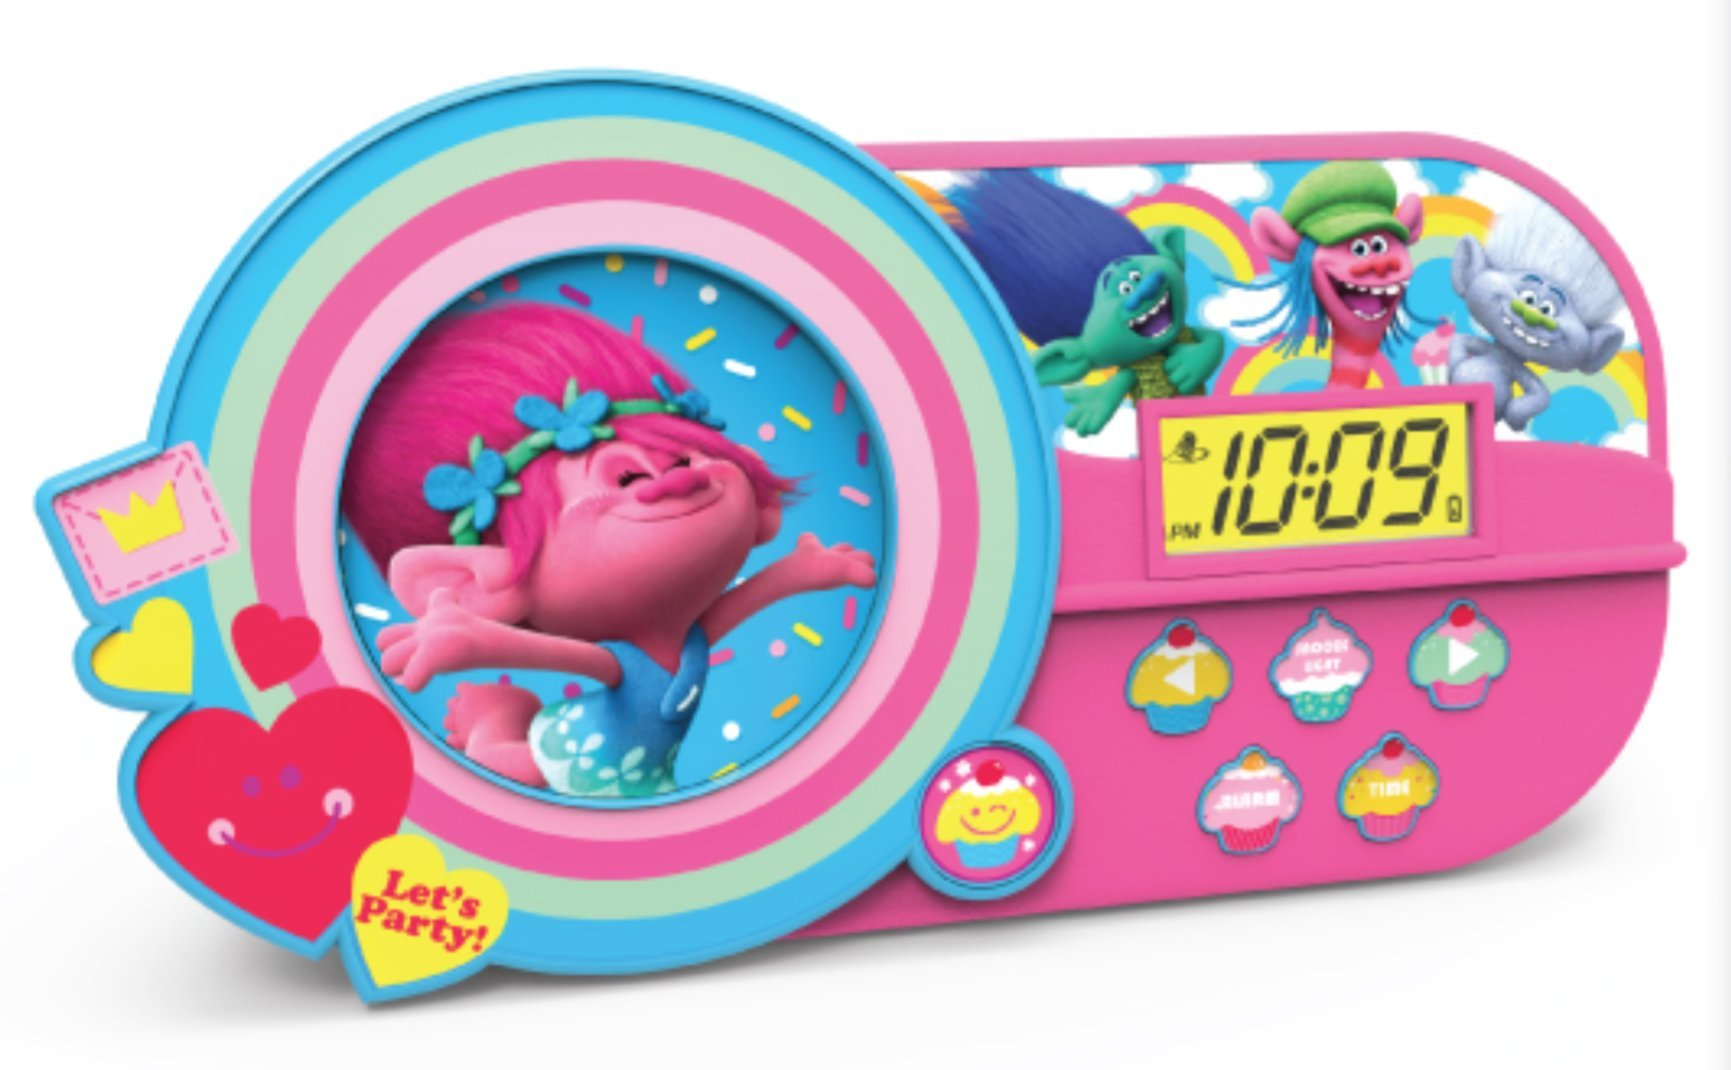 KIDdesigns Dreamworks Trolls Alarm Clock with Music and Night Light